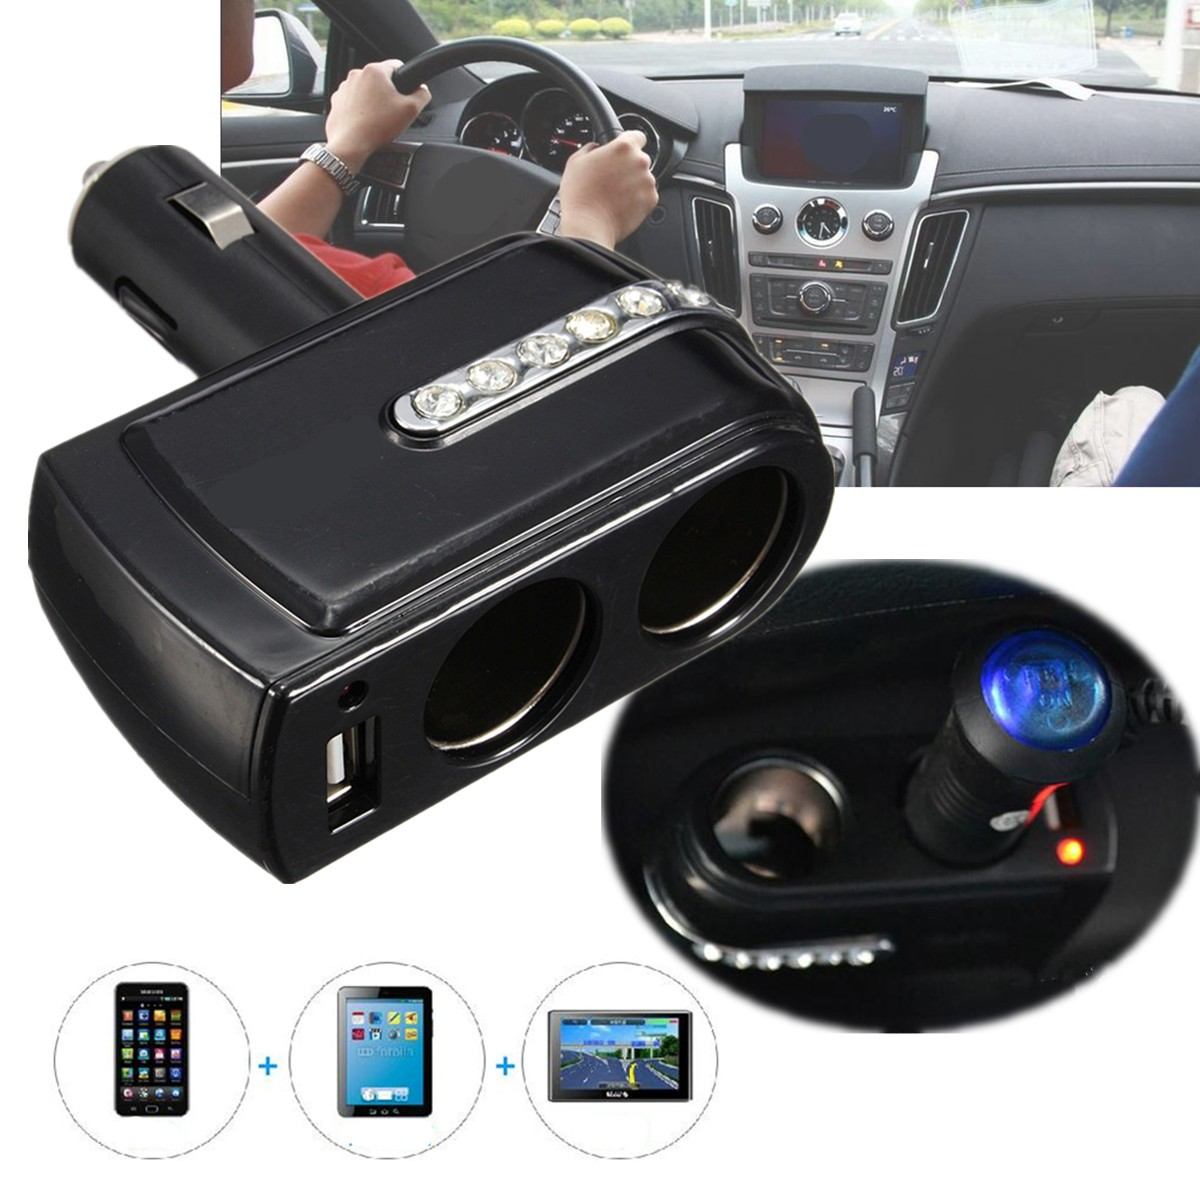 6a 3 ports voiture allume cigare multiprise chargeur socket adaptateur pr iphone ebay. Black Bedroom Furniture Sets. Home Design Ideas